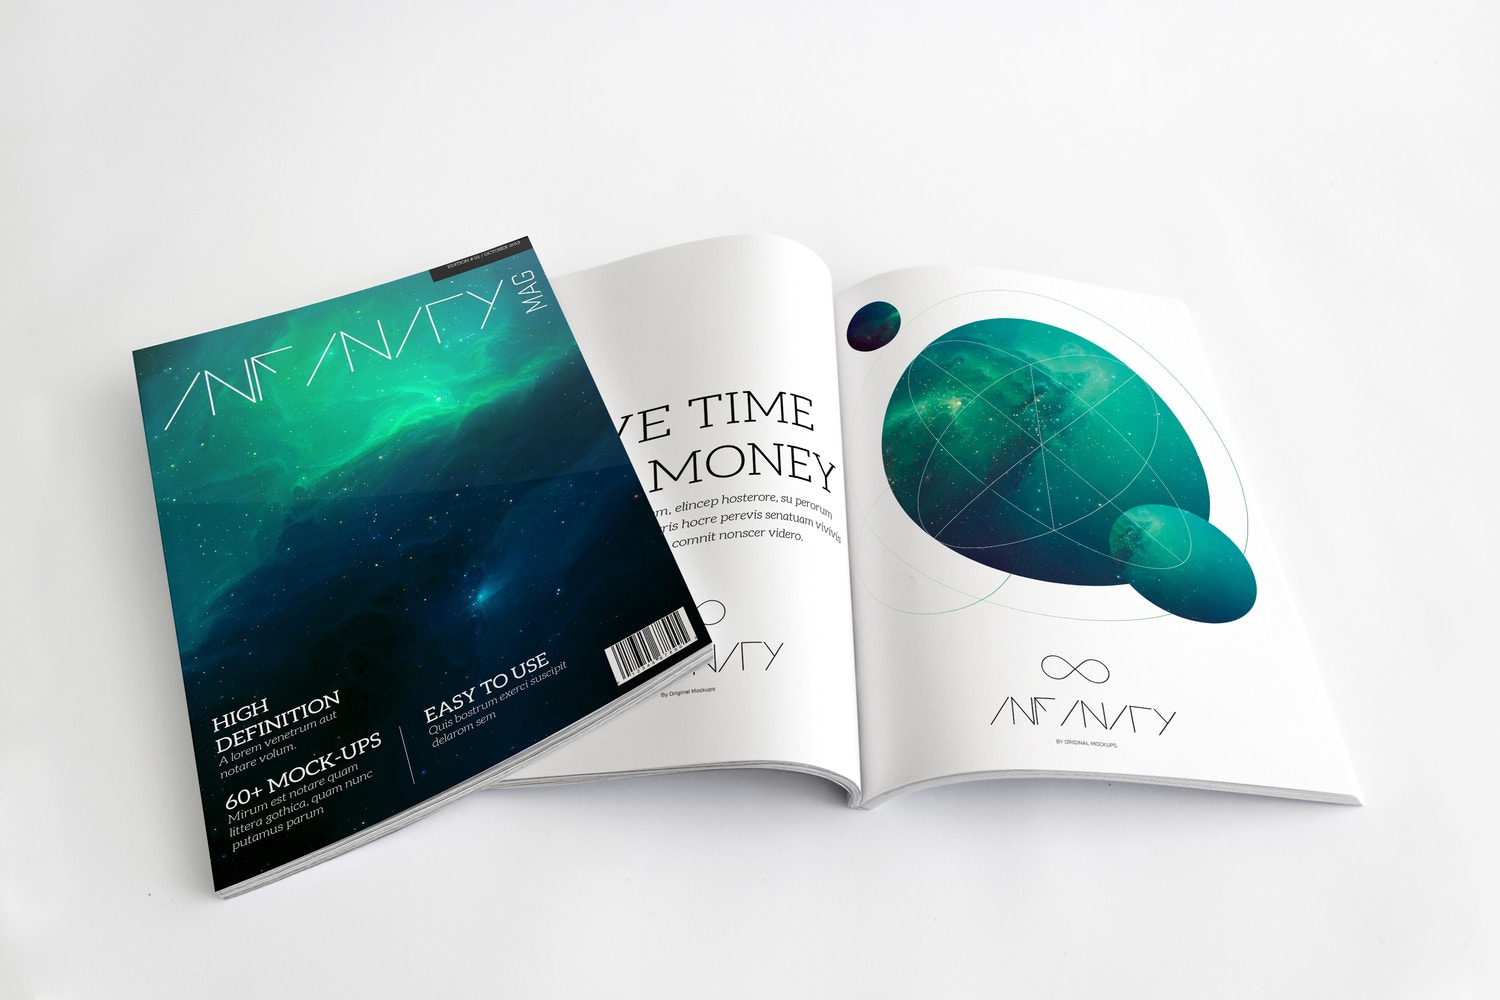 A4 Magazine Mockup for Cover & Spread Page 01 by Original Mockups on Original Mockups